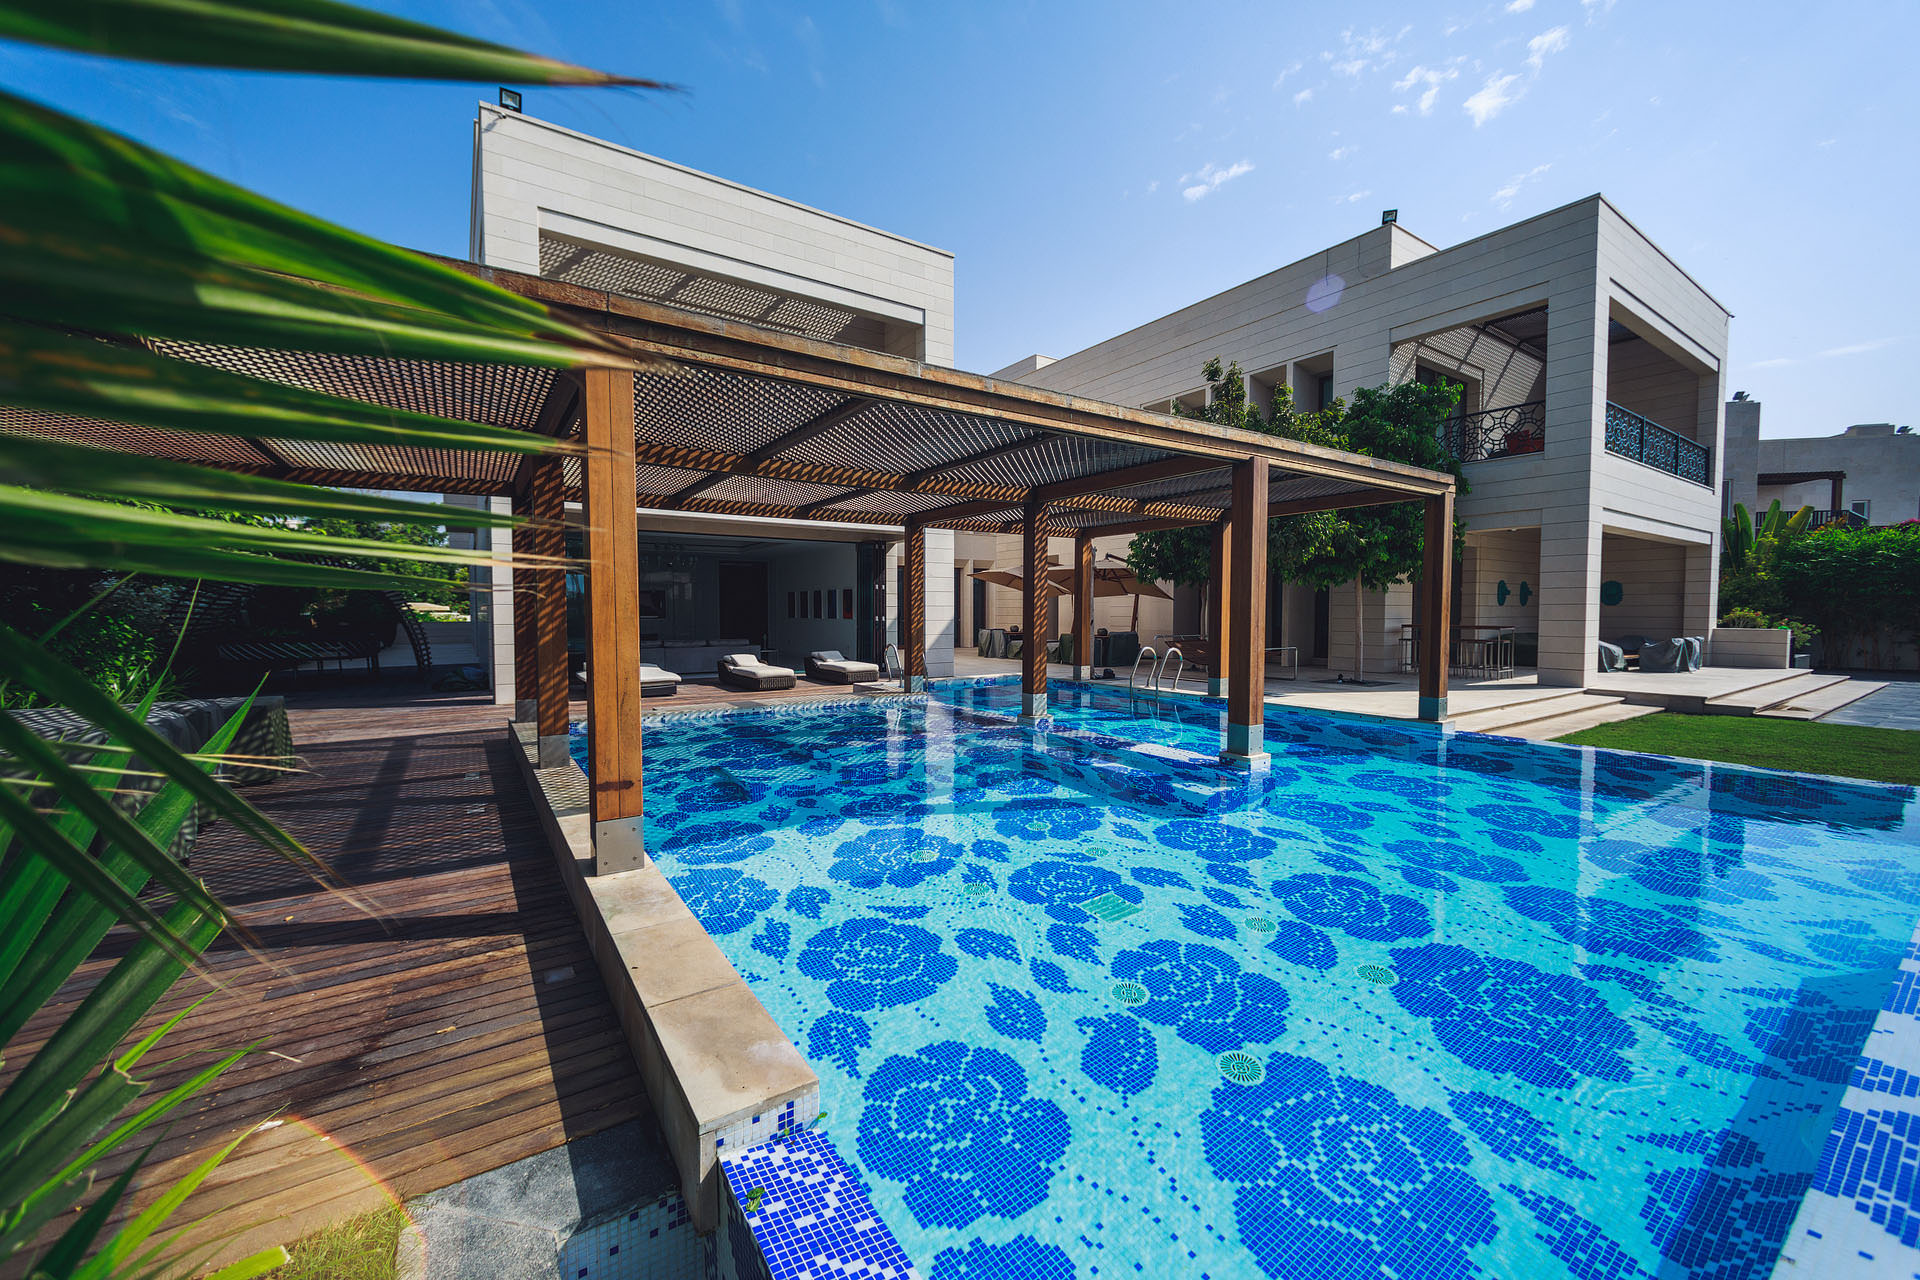 6791 dubai luxury home photographer international